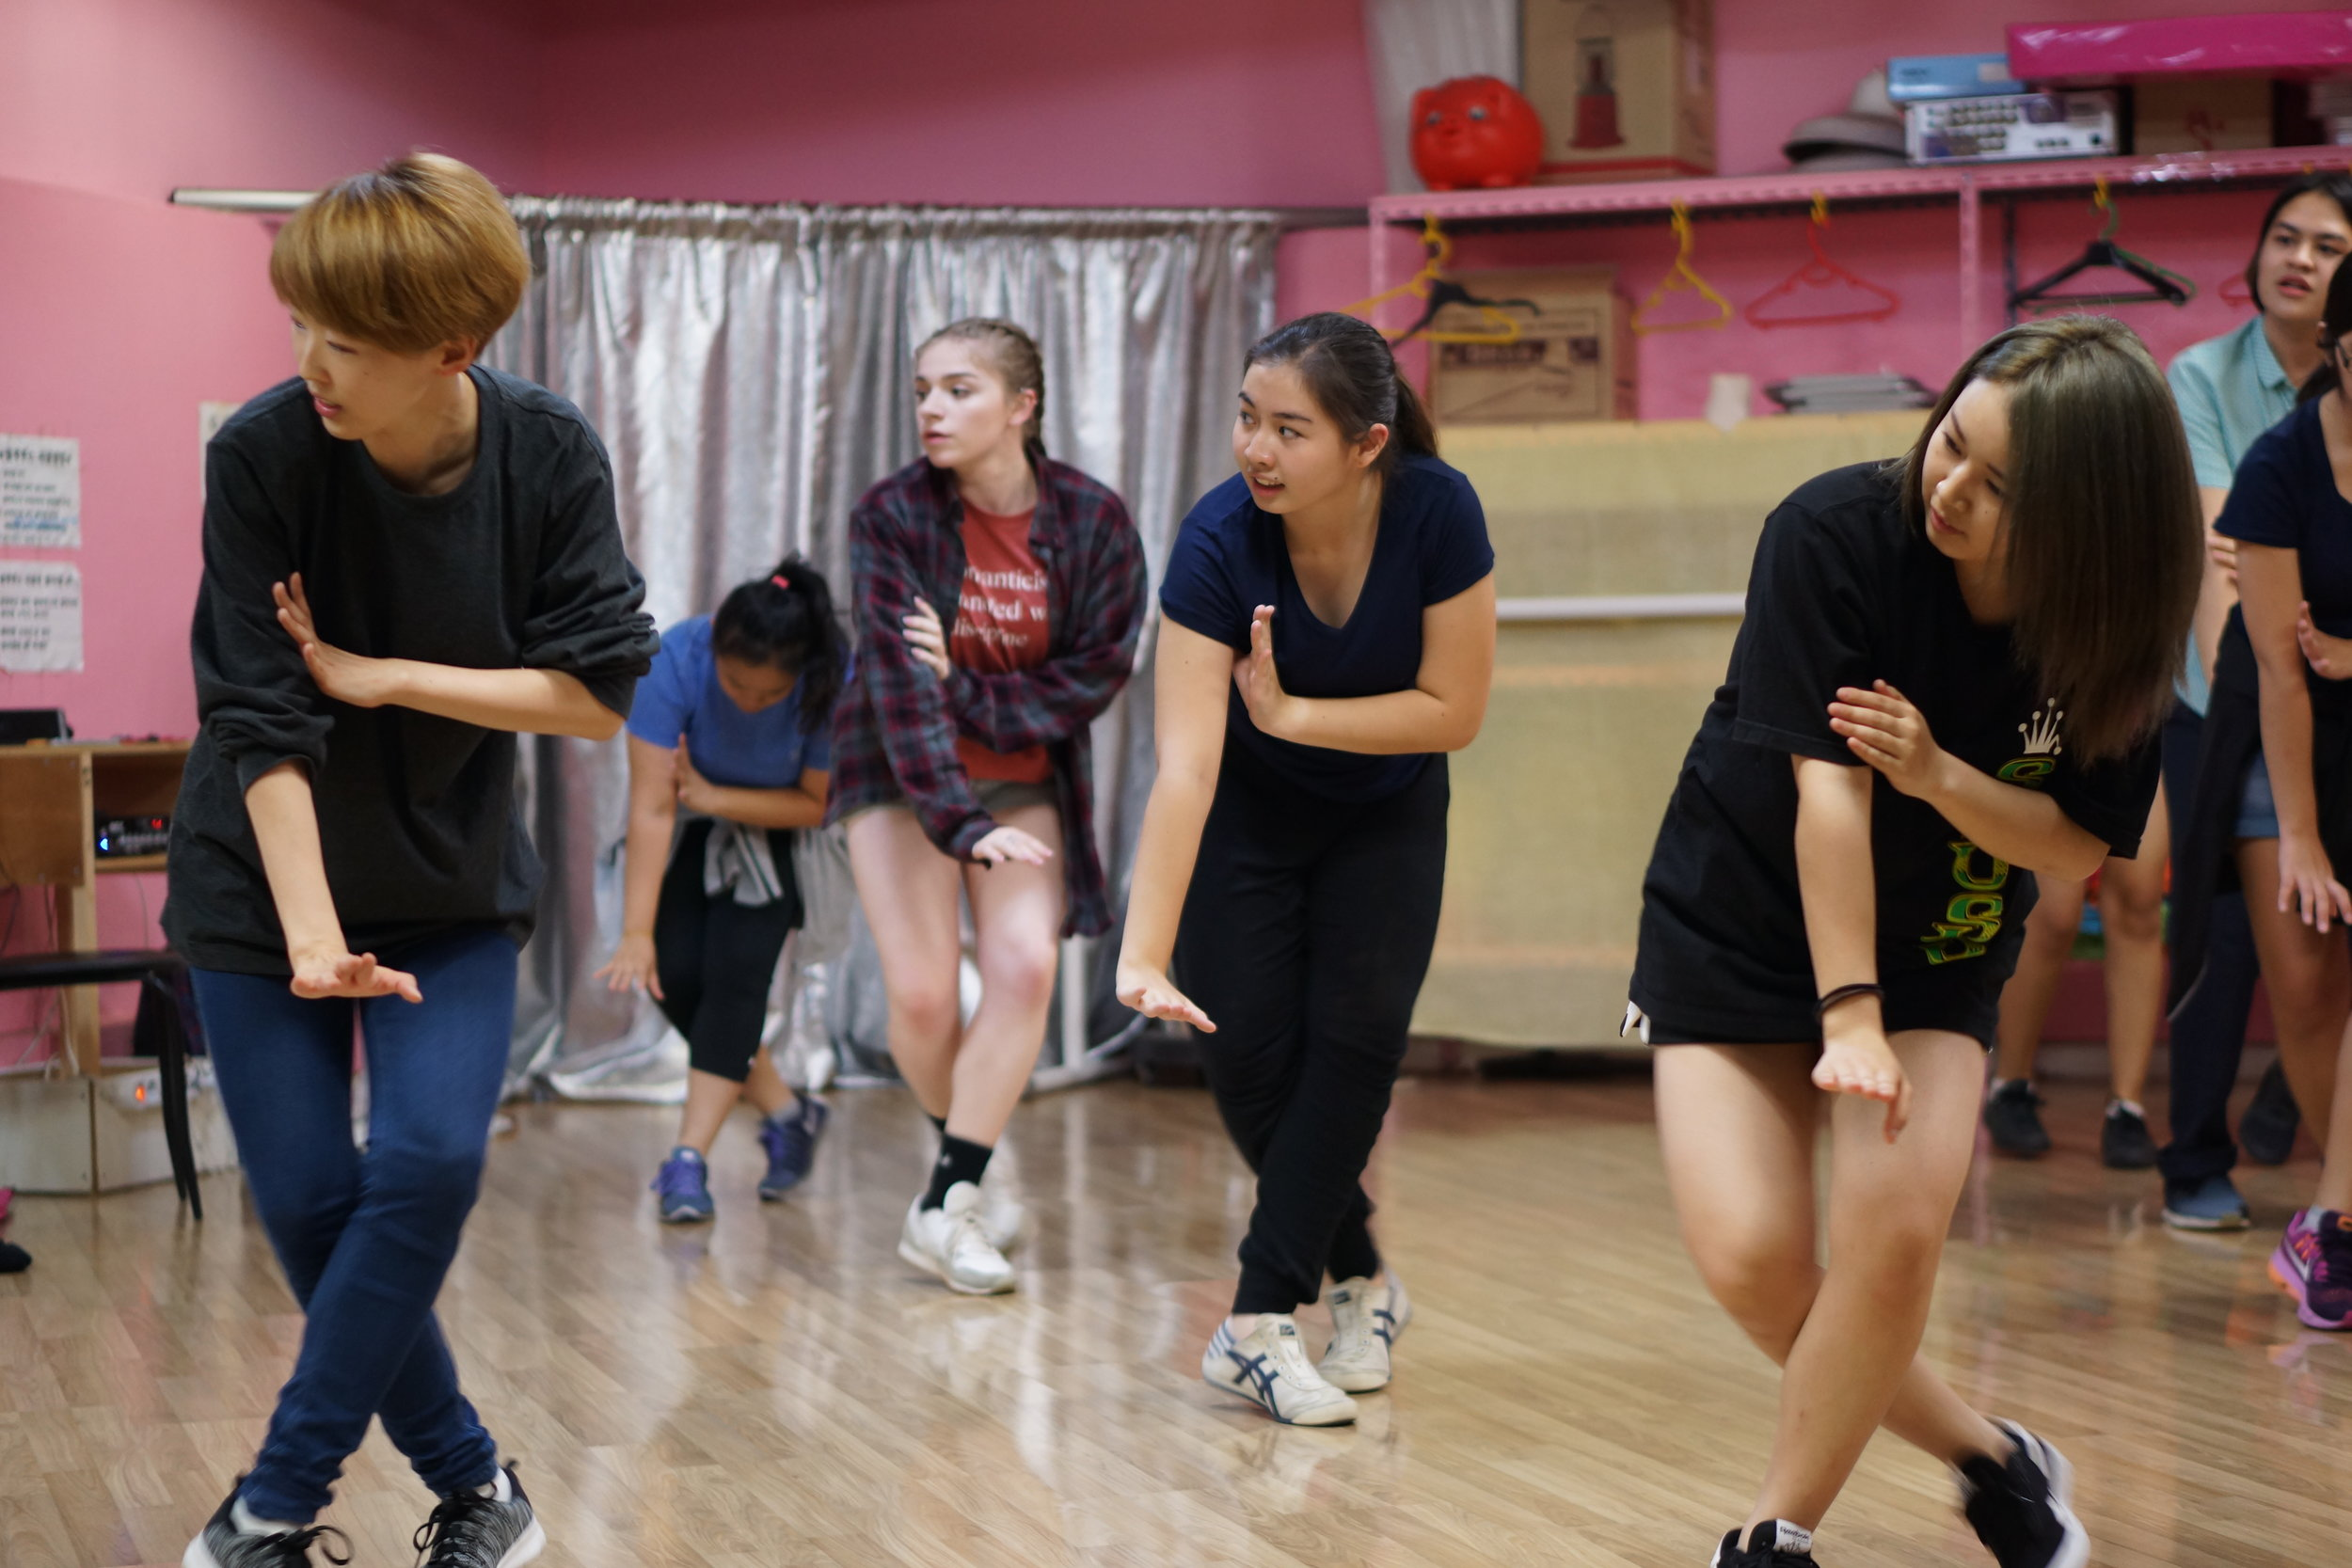 Interns enjoy free KPop Dance lessons.